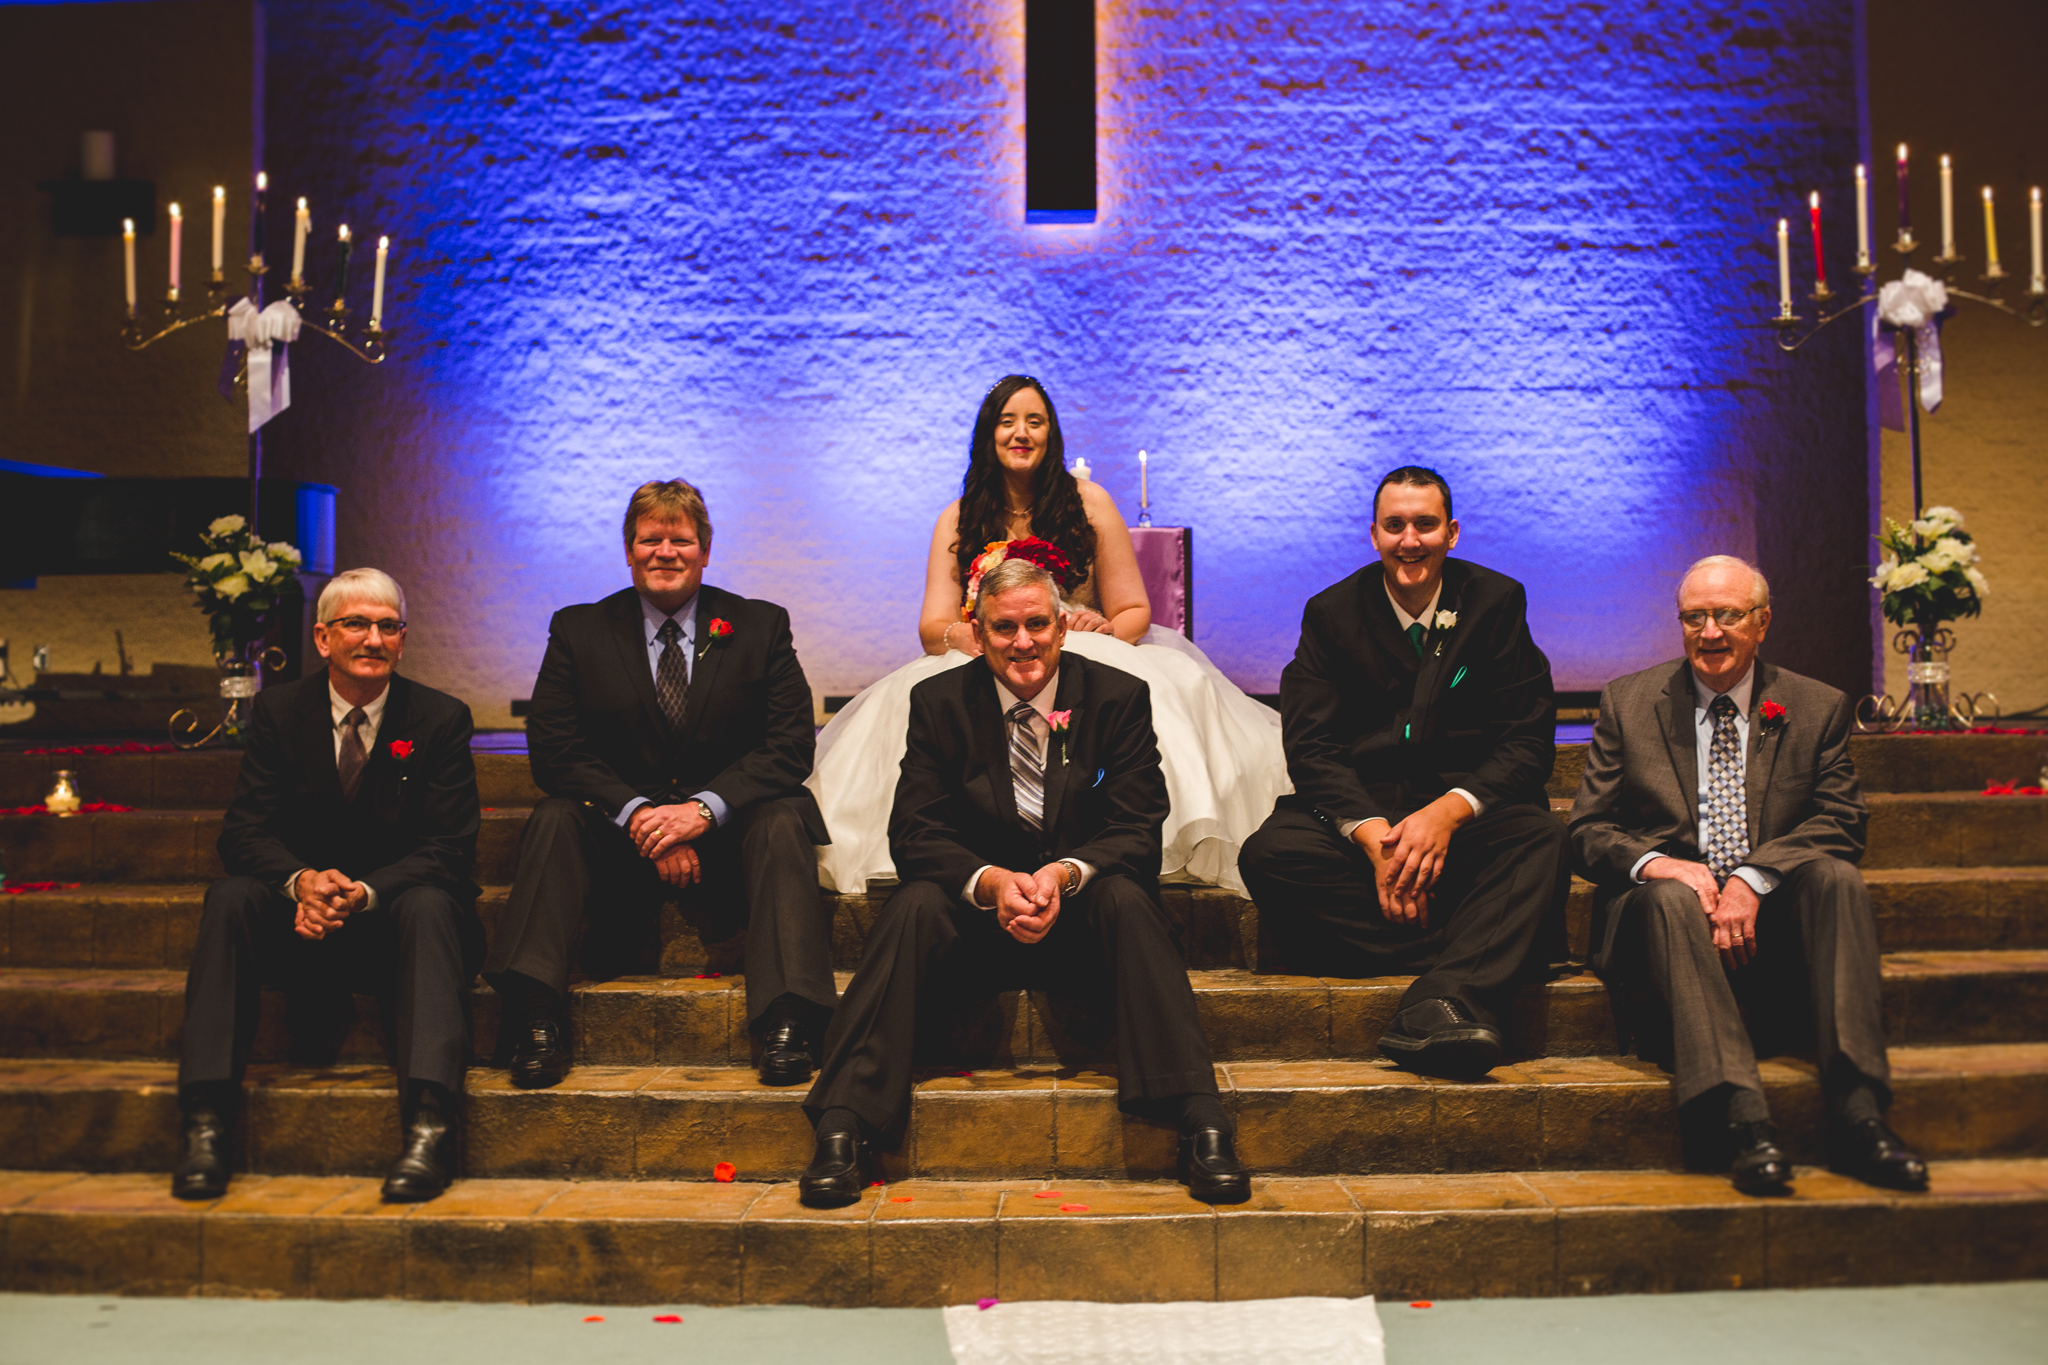 rs bride with groomsmen and father from wedding